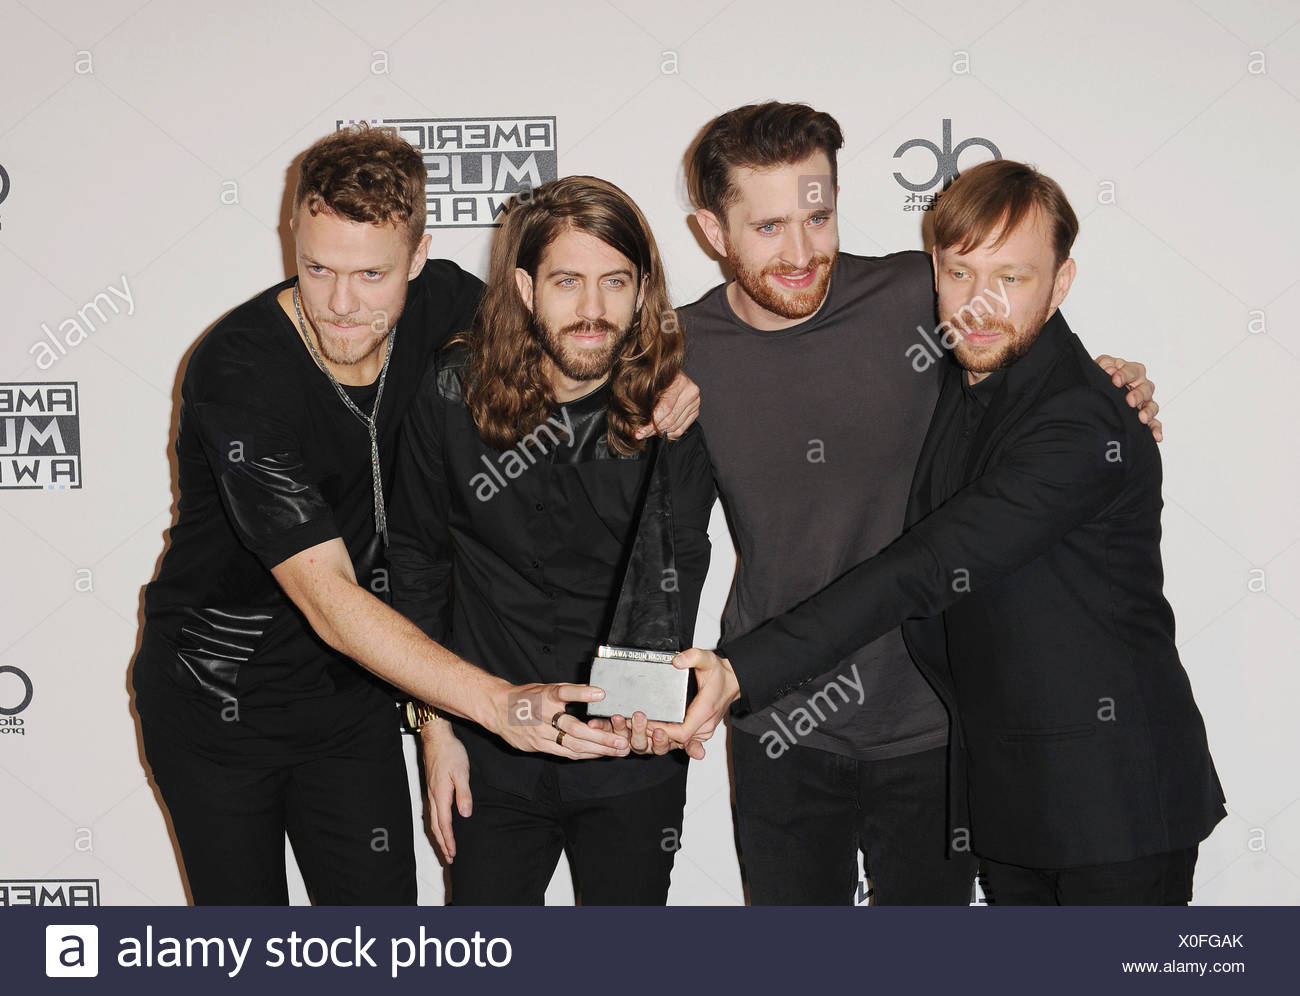 (L-R) Musicians Ben McKee, Daniel Platzman, Daniel Wayne Sermon and Dan Reynolds of Imagine Dragons pose in the press room at the 2014 American Music Awards at Nokia Theatre L.A. Live on November 23, 2014 in Los Angeles, California., Additional-Rights-Clearances-NA - Stock Image